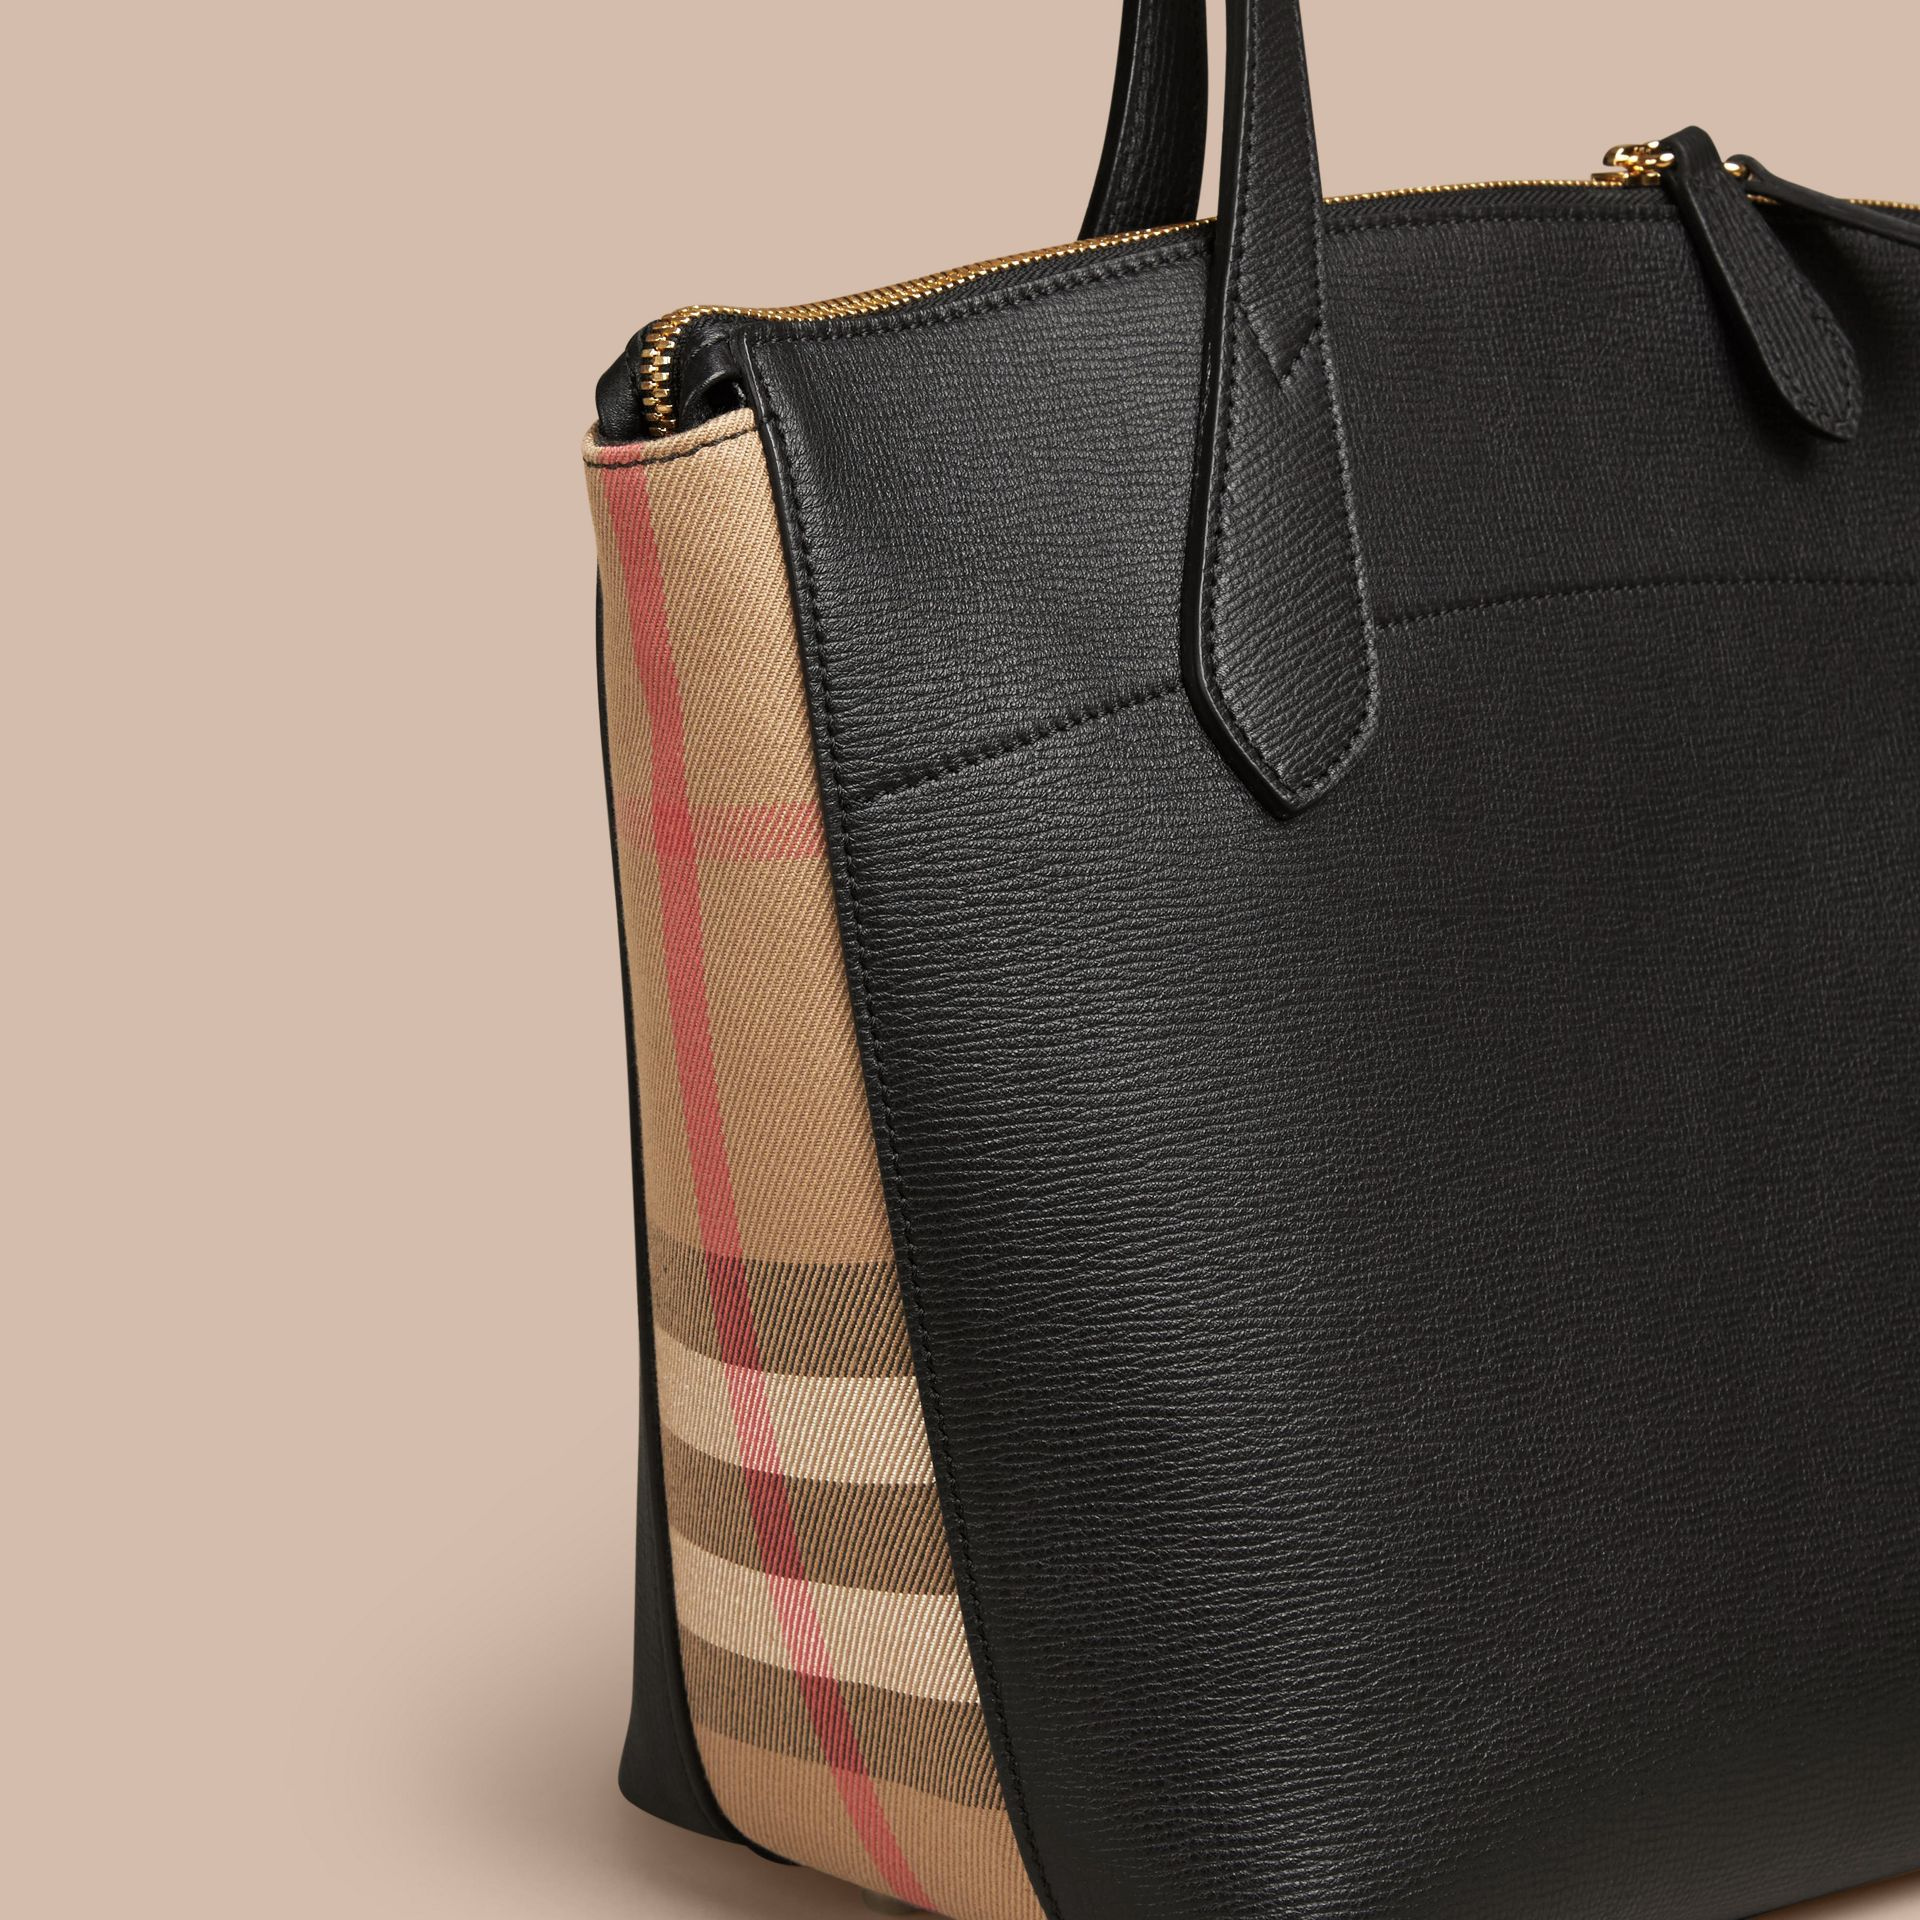 Medium Leather and House Check Tote Bag in Black - Women | Burberry - gallery image 6